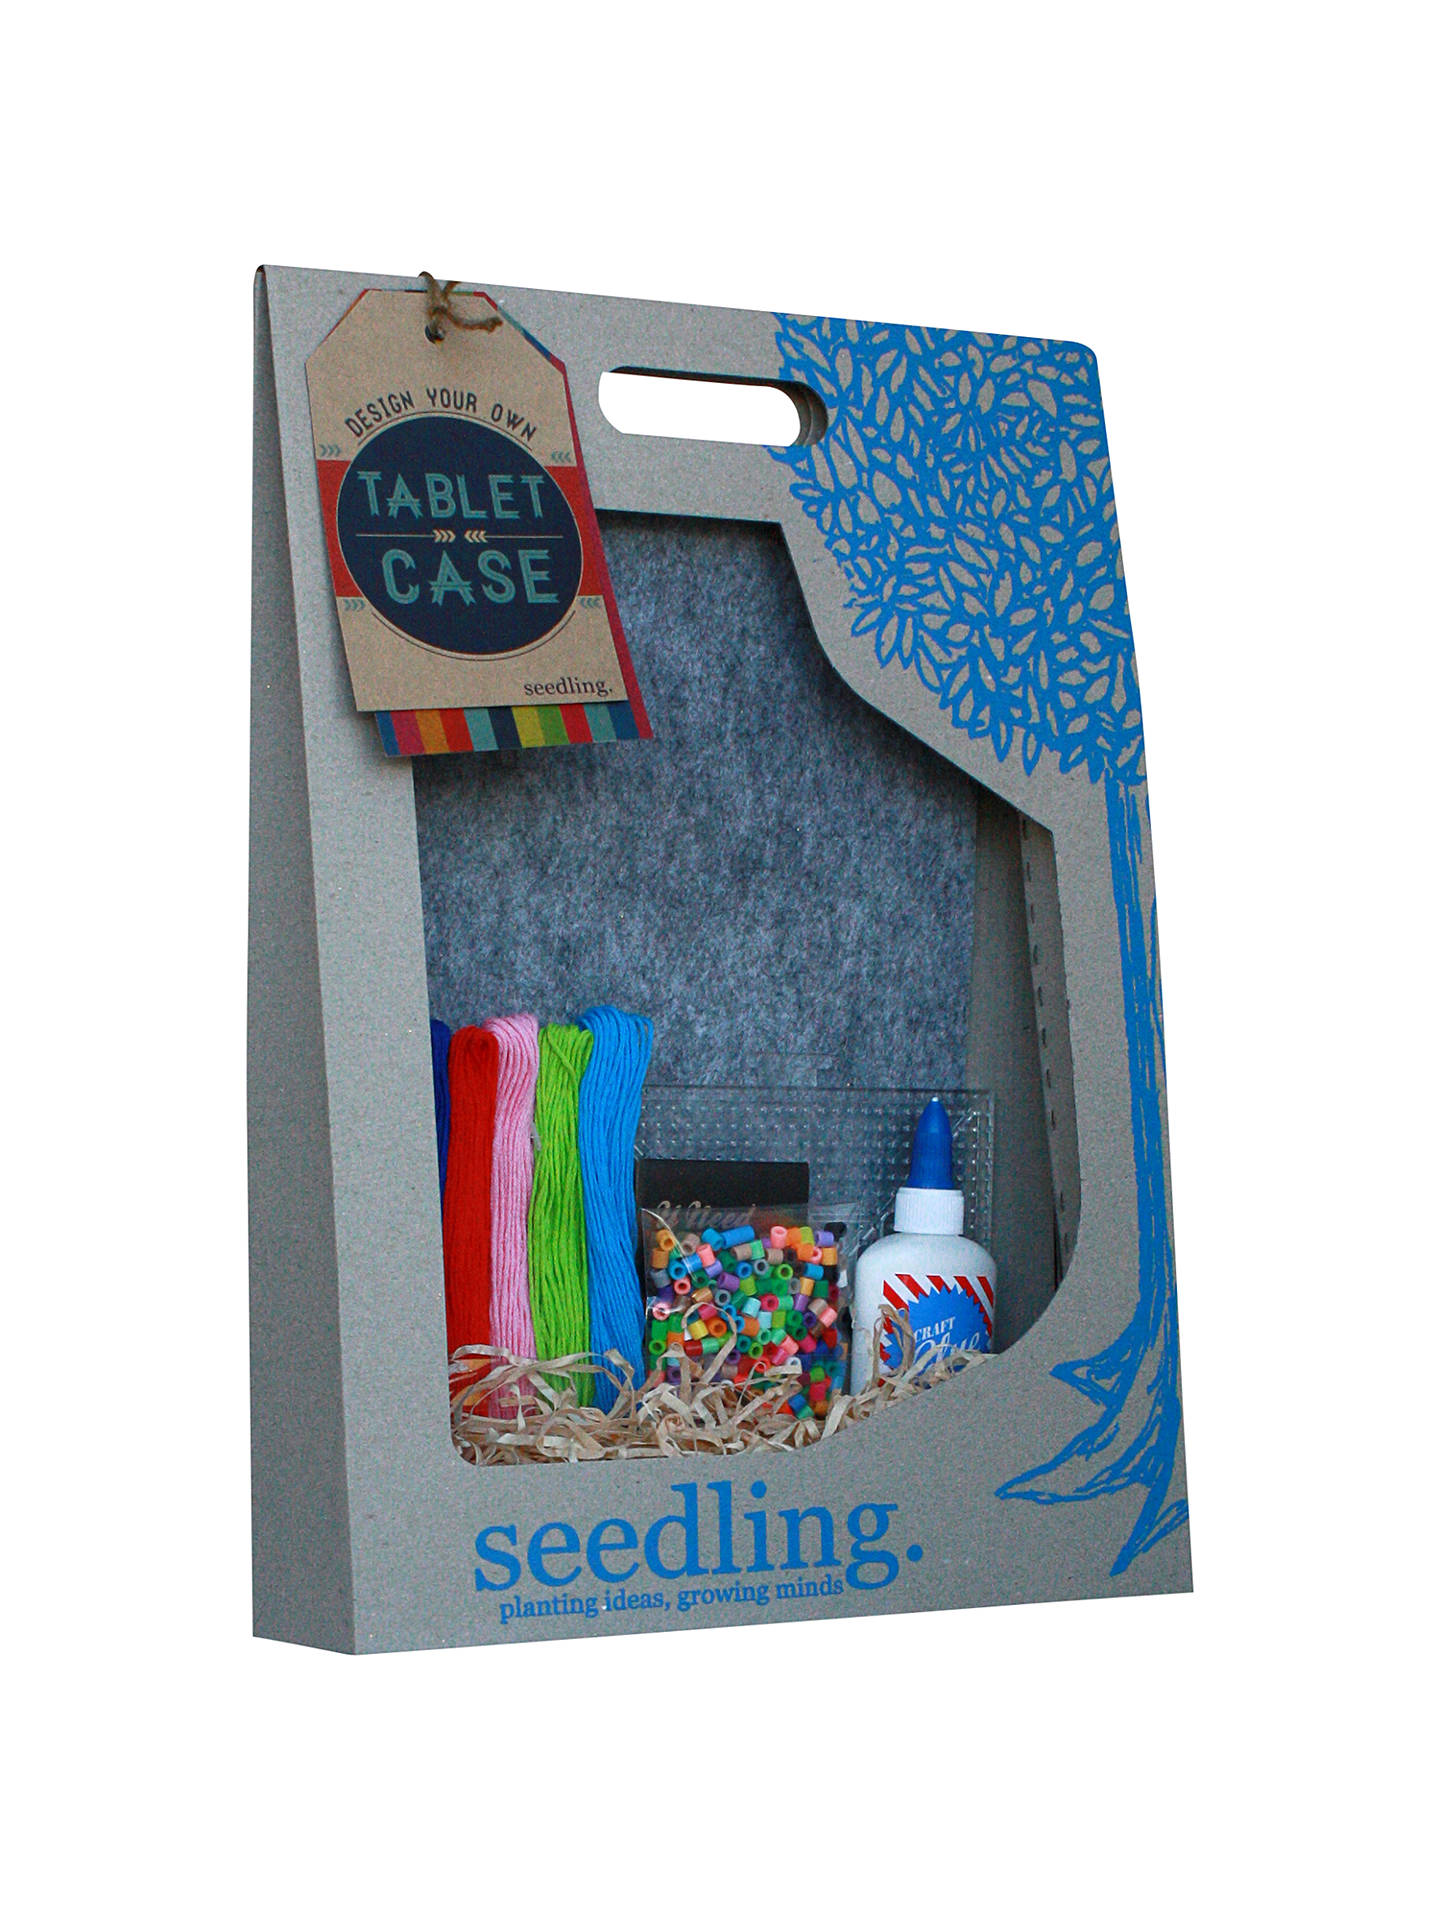 low priced 70a2e 7cede Seedling Design Your Own Tablet Case Kit at John Lewis & Partners